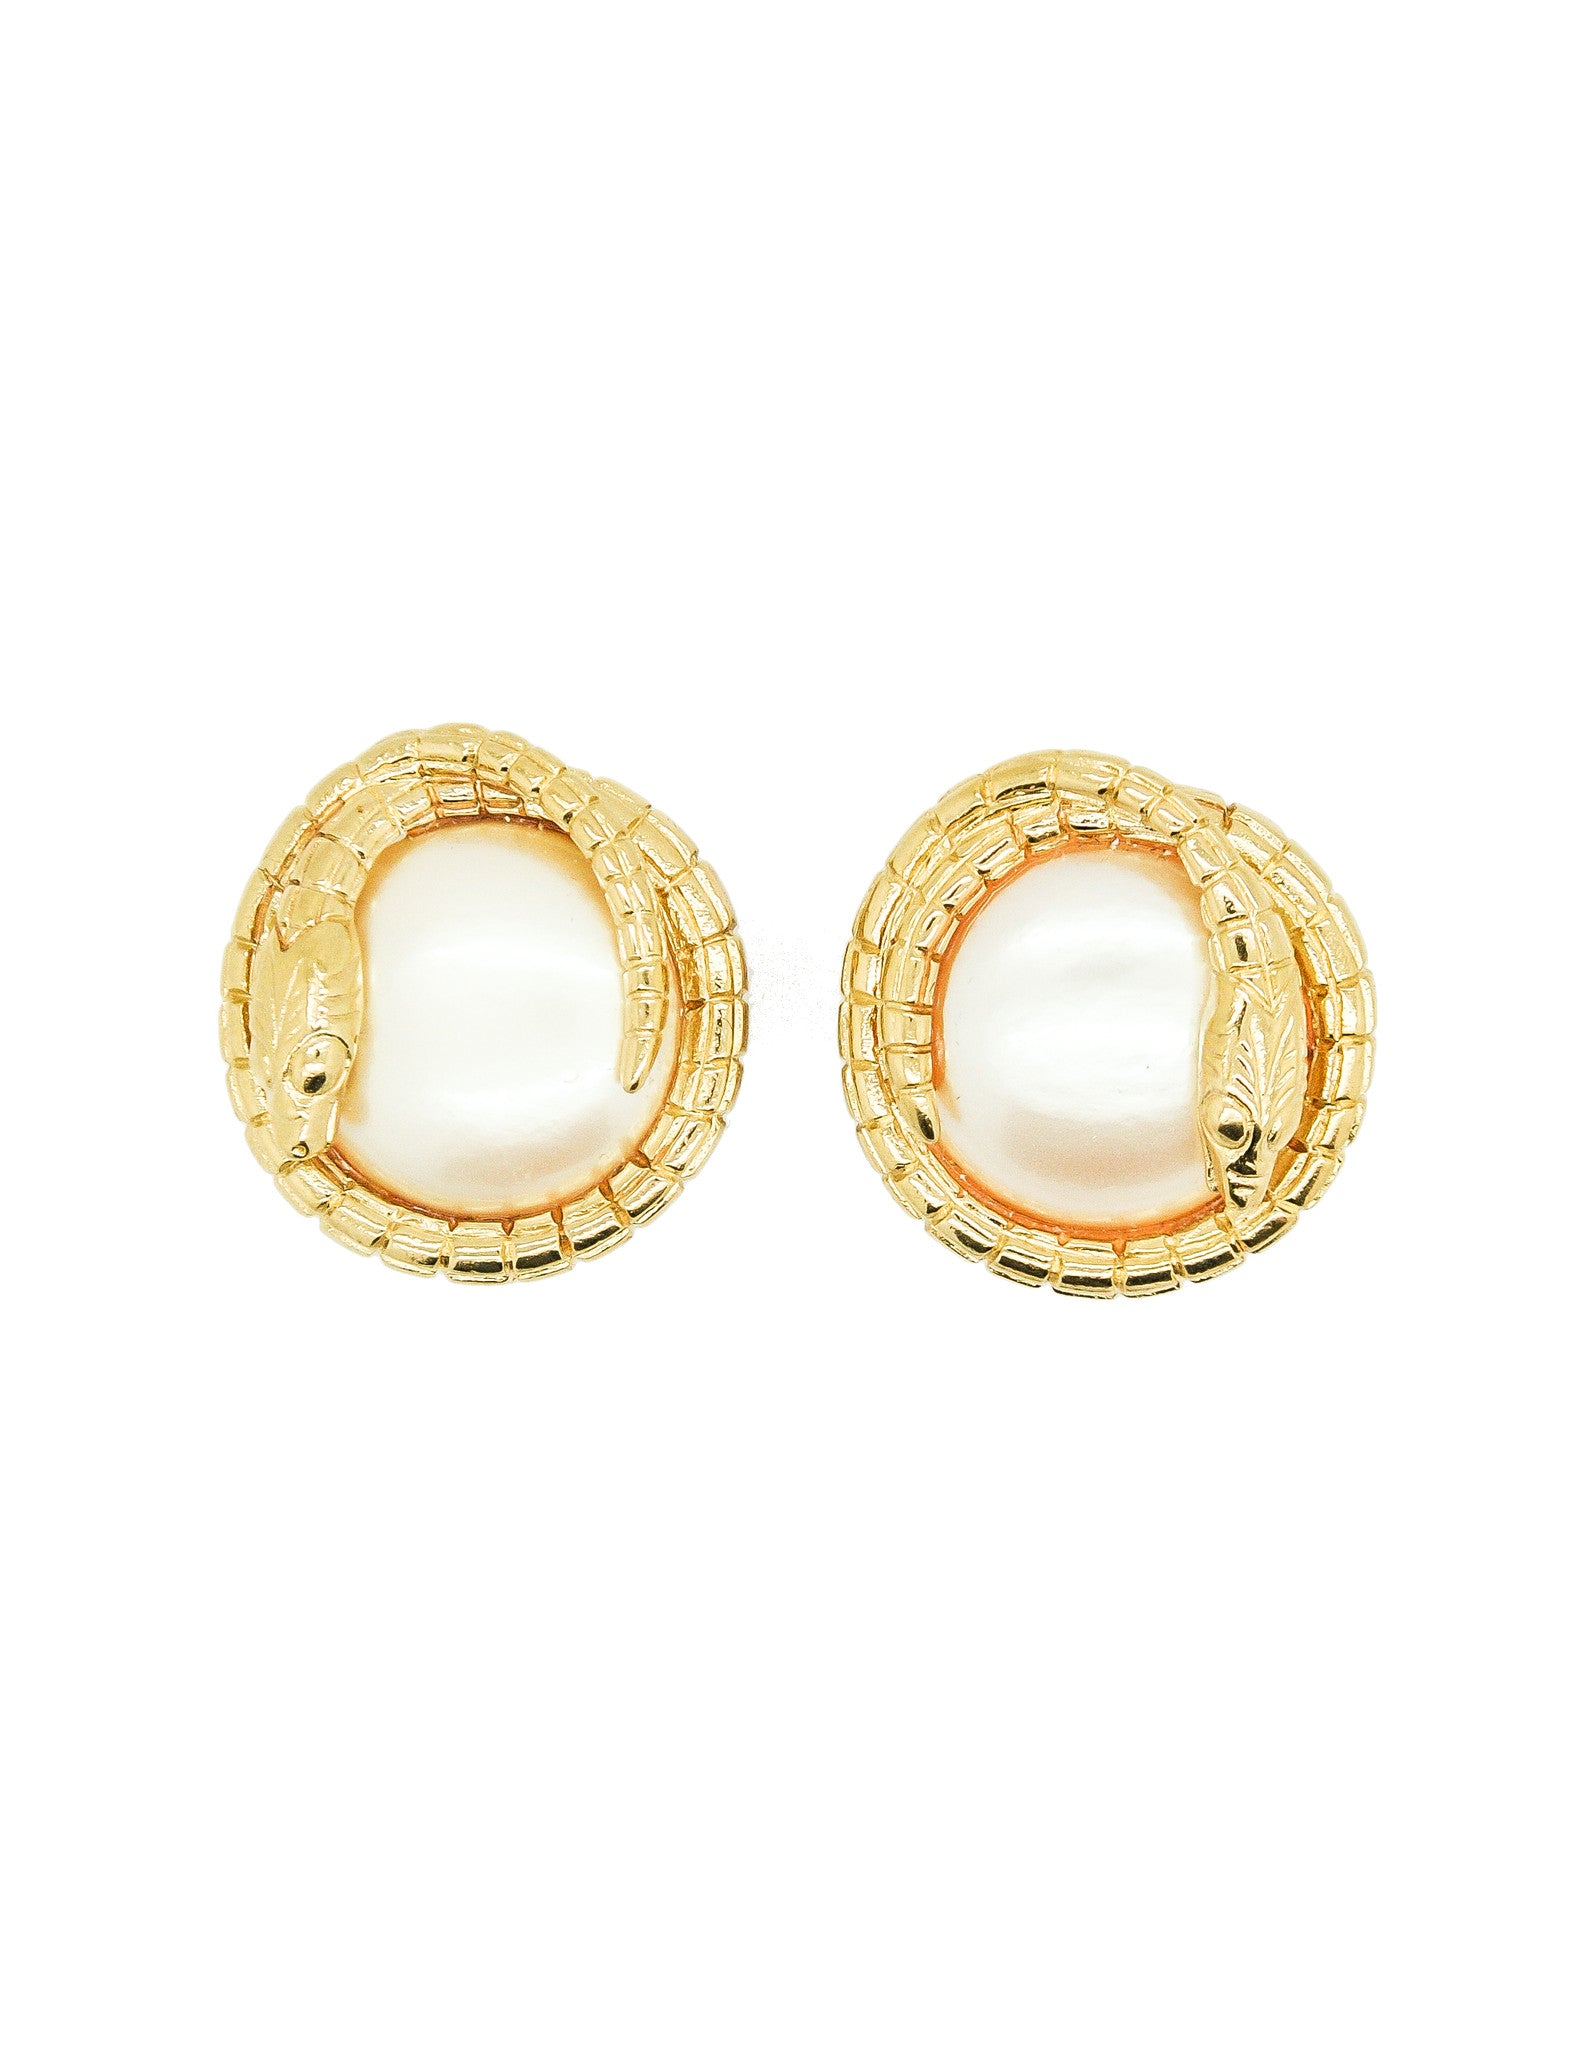 Givenchy Vintage Gold Snake Pearl Earrings - Amarcord Vintage Fashion  - 1